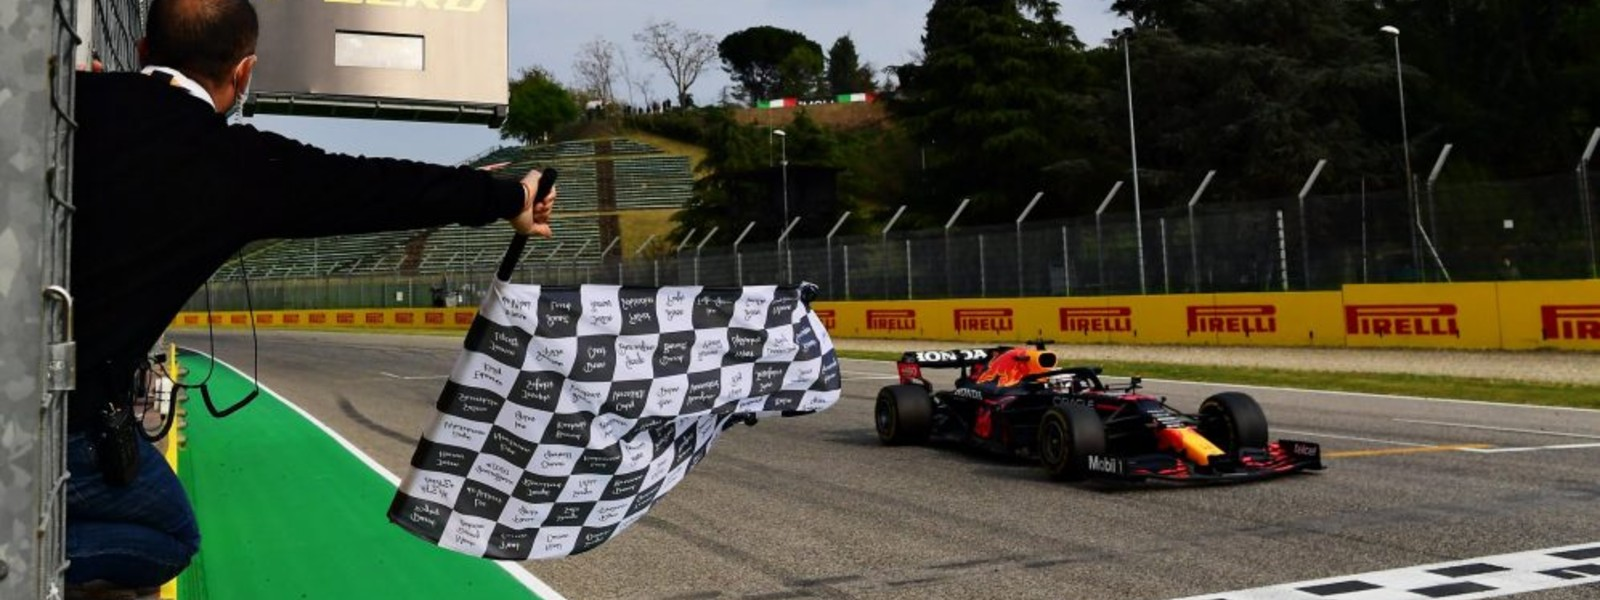 Verstappen takes victory from Hamilton in action-packed Grand Prix at Imola